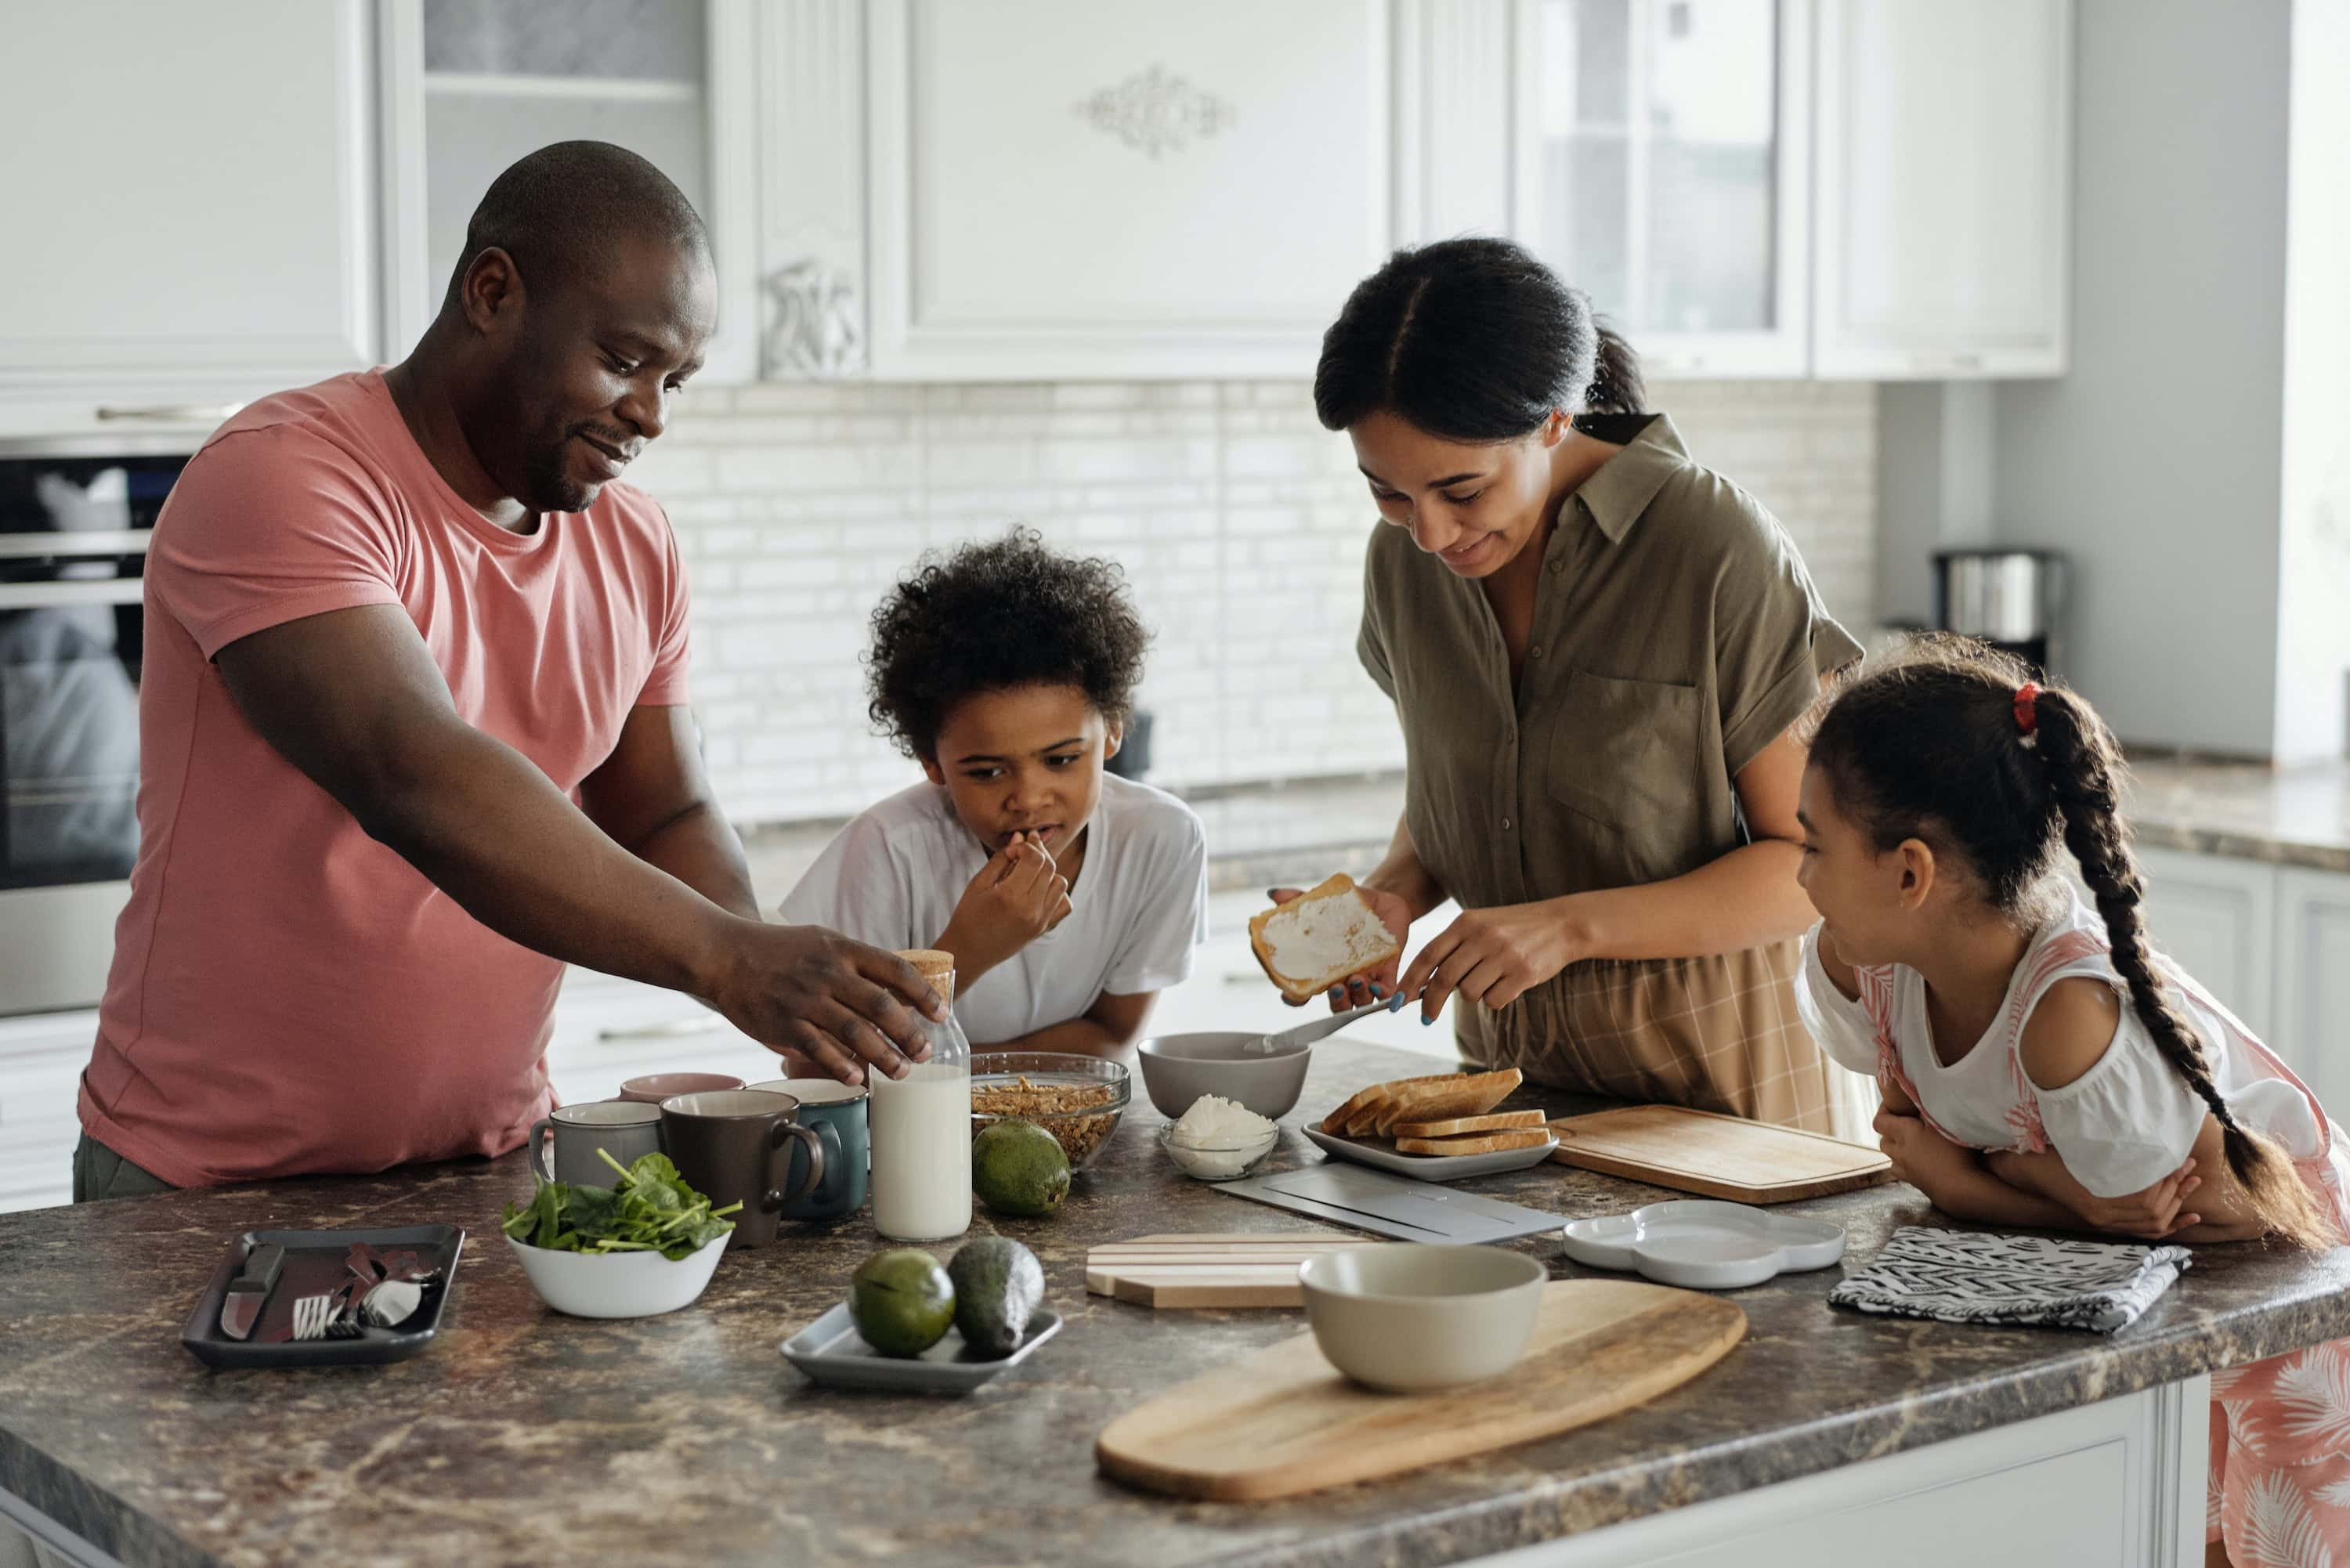 A family gathers at a kitchen island prepping a meal together.